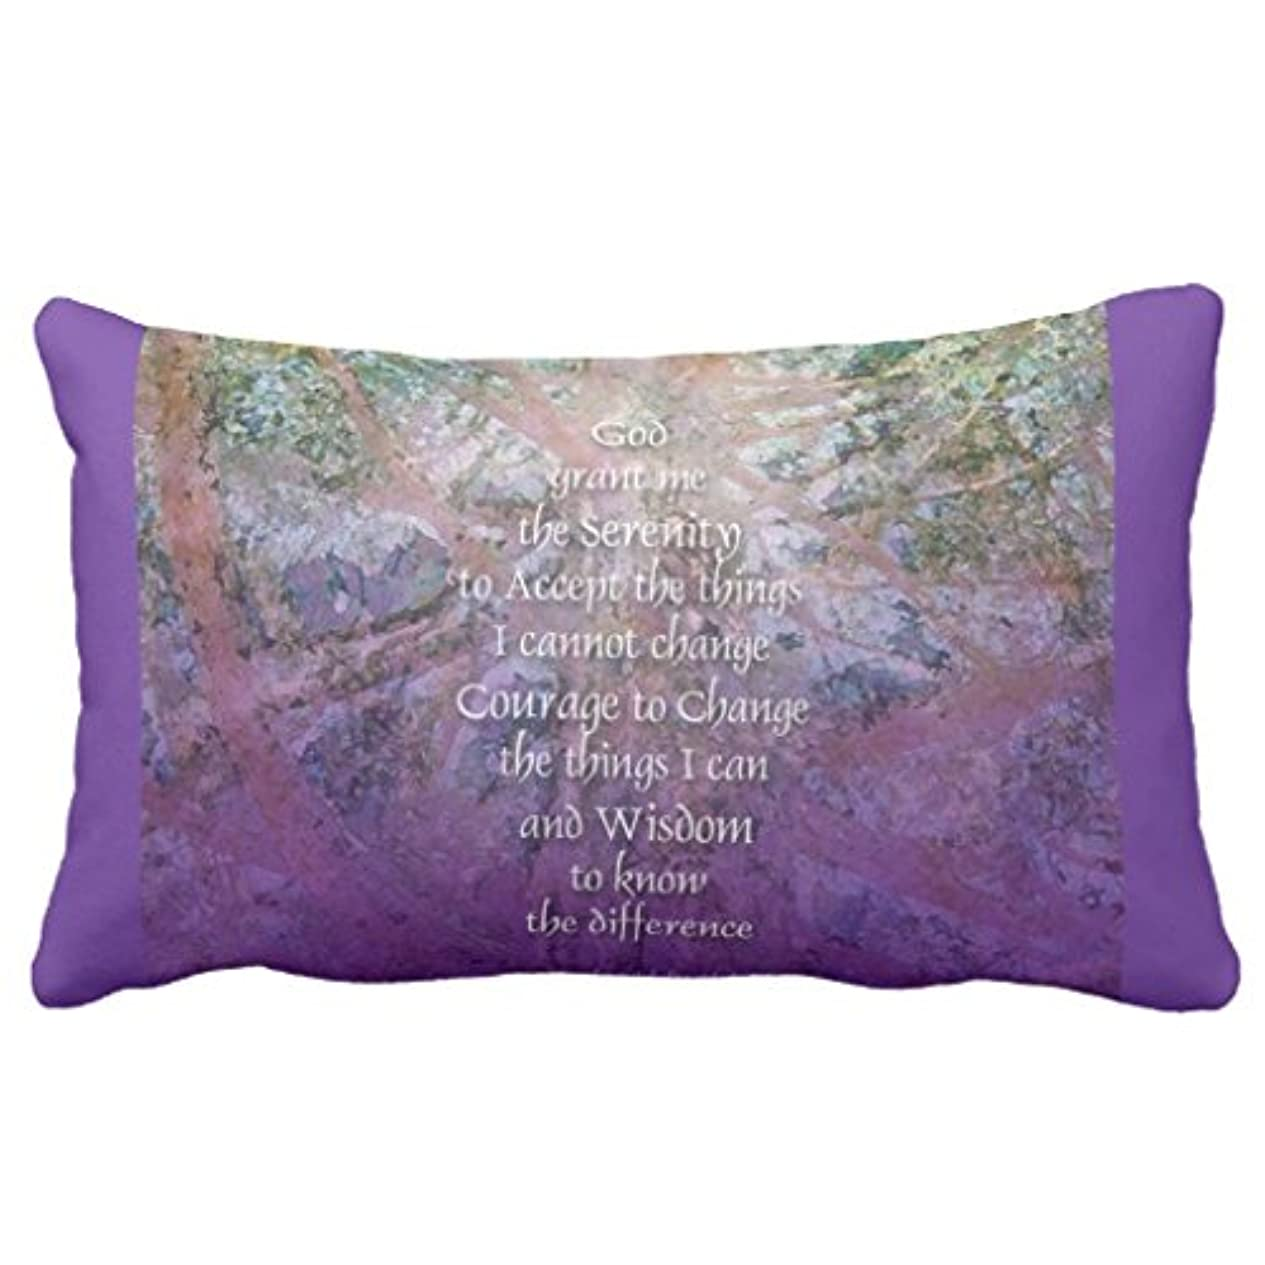 記念爬虫類対話Zazzle Serenity Prayer Incense Cedar American Mojo枕 13